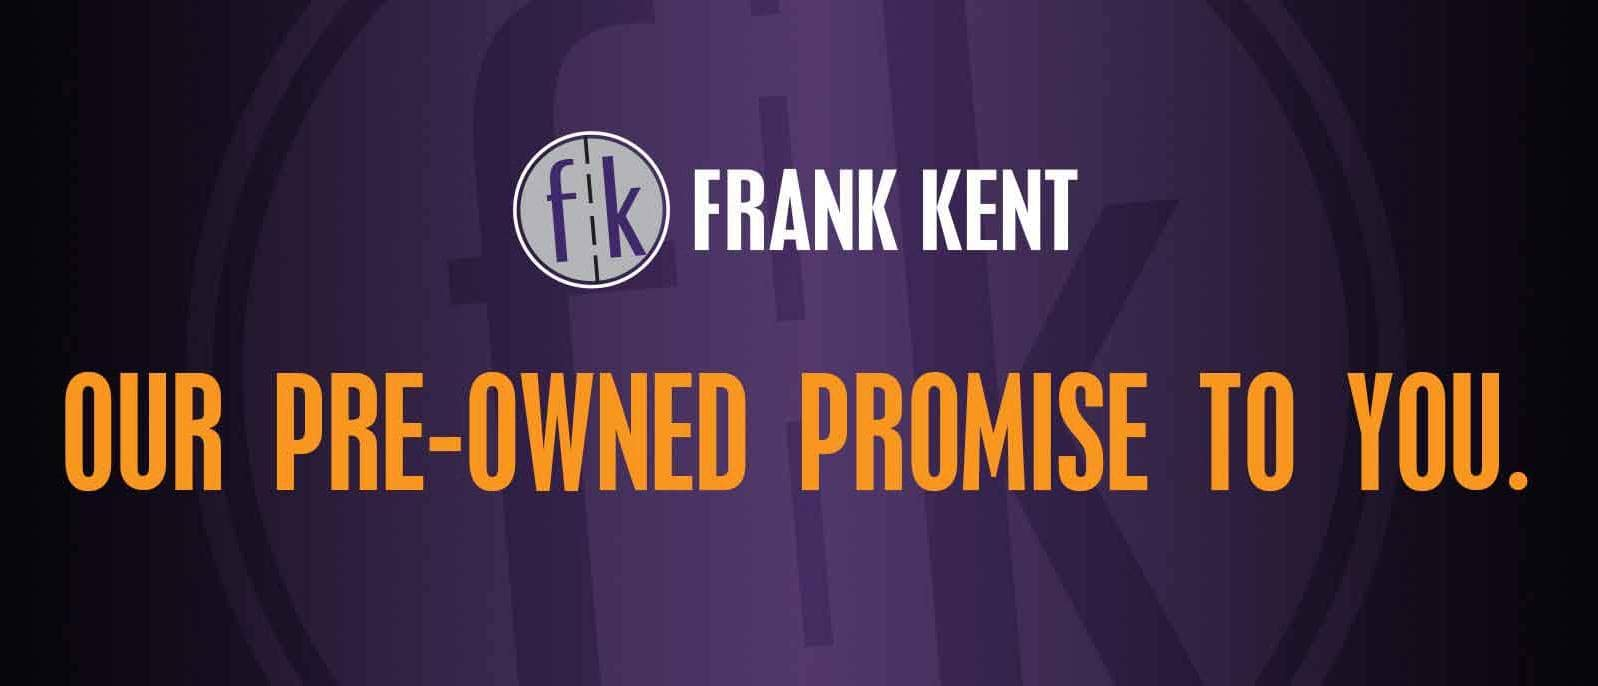 Frank Kent Cadillac Pre-Owned Promise